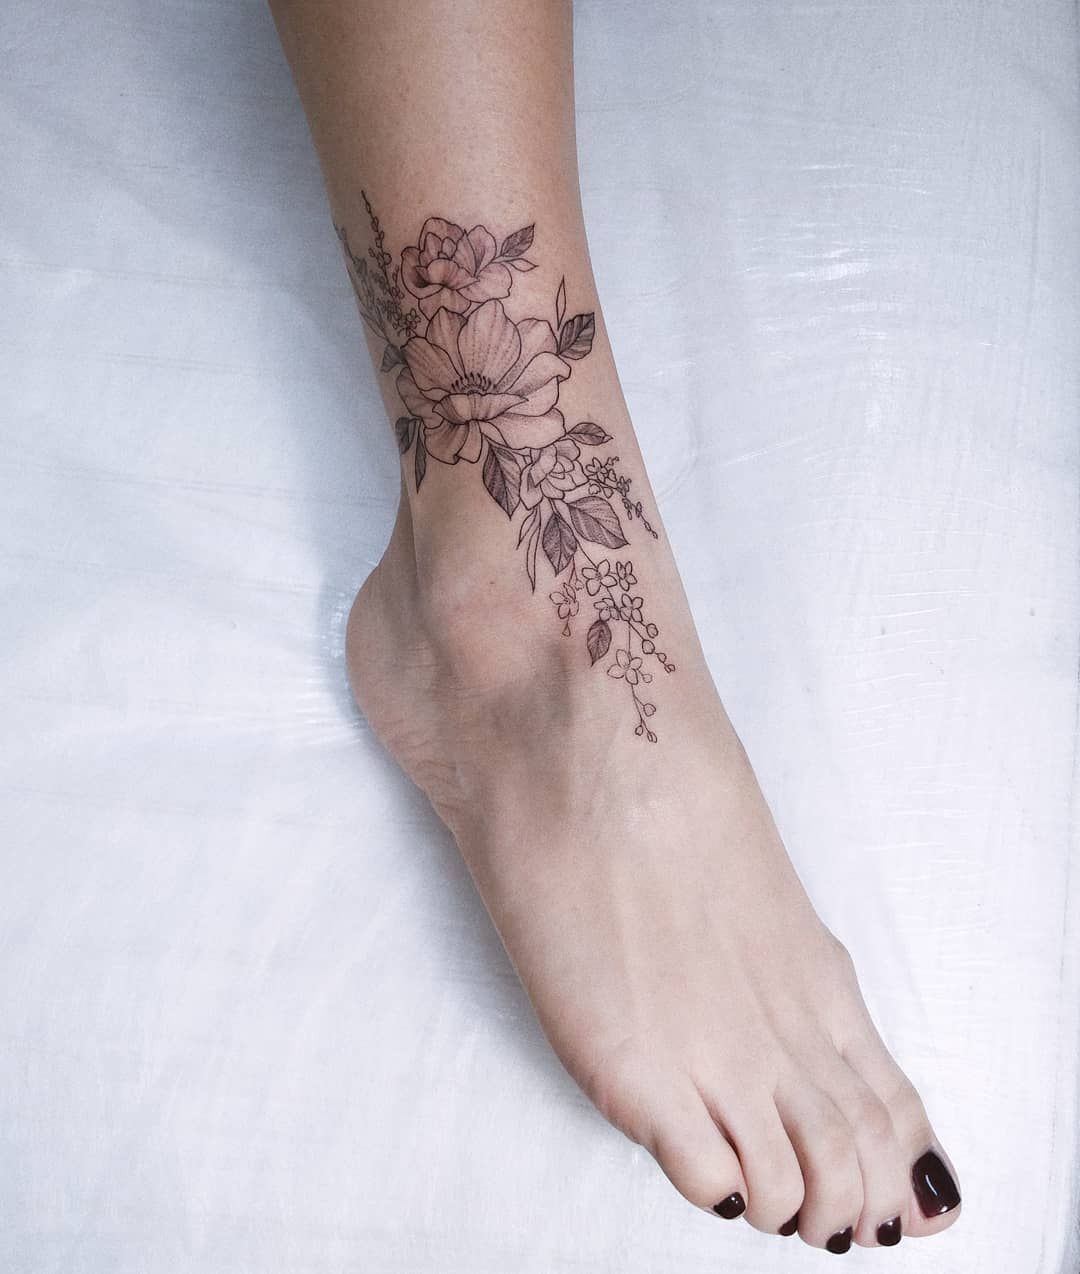 Delicate Floral Ankle Tattoo By Irene Bogachuk Feminine Tattooing Irenebogachuk Ankle Tattoos For Women Ankle Tattoo Foot Tattoos